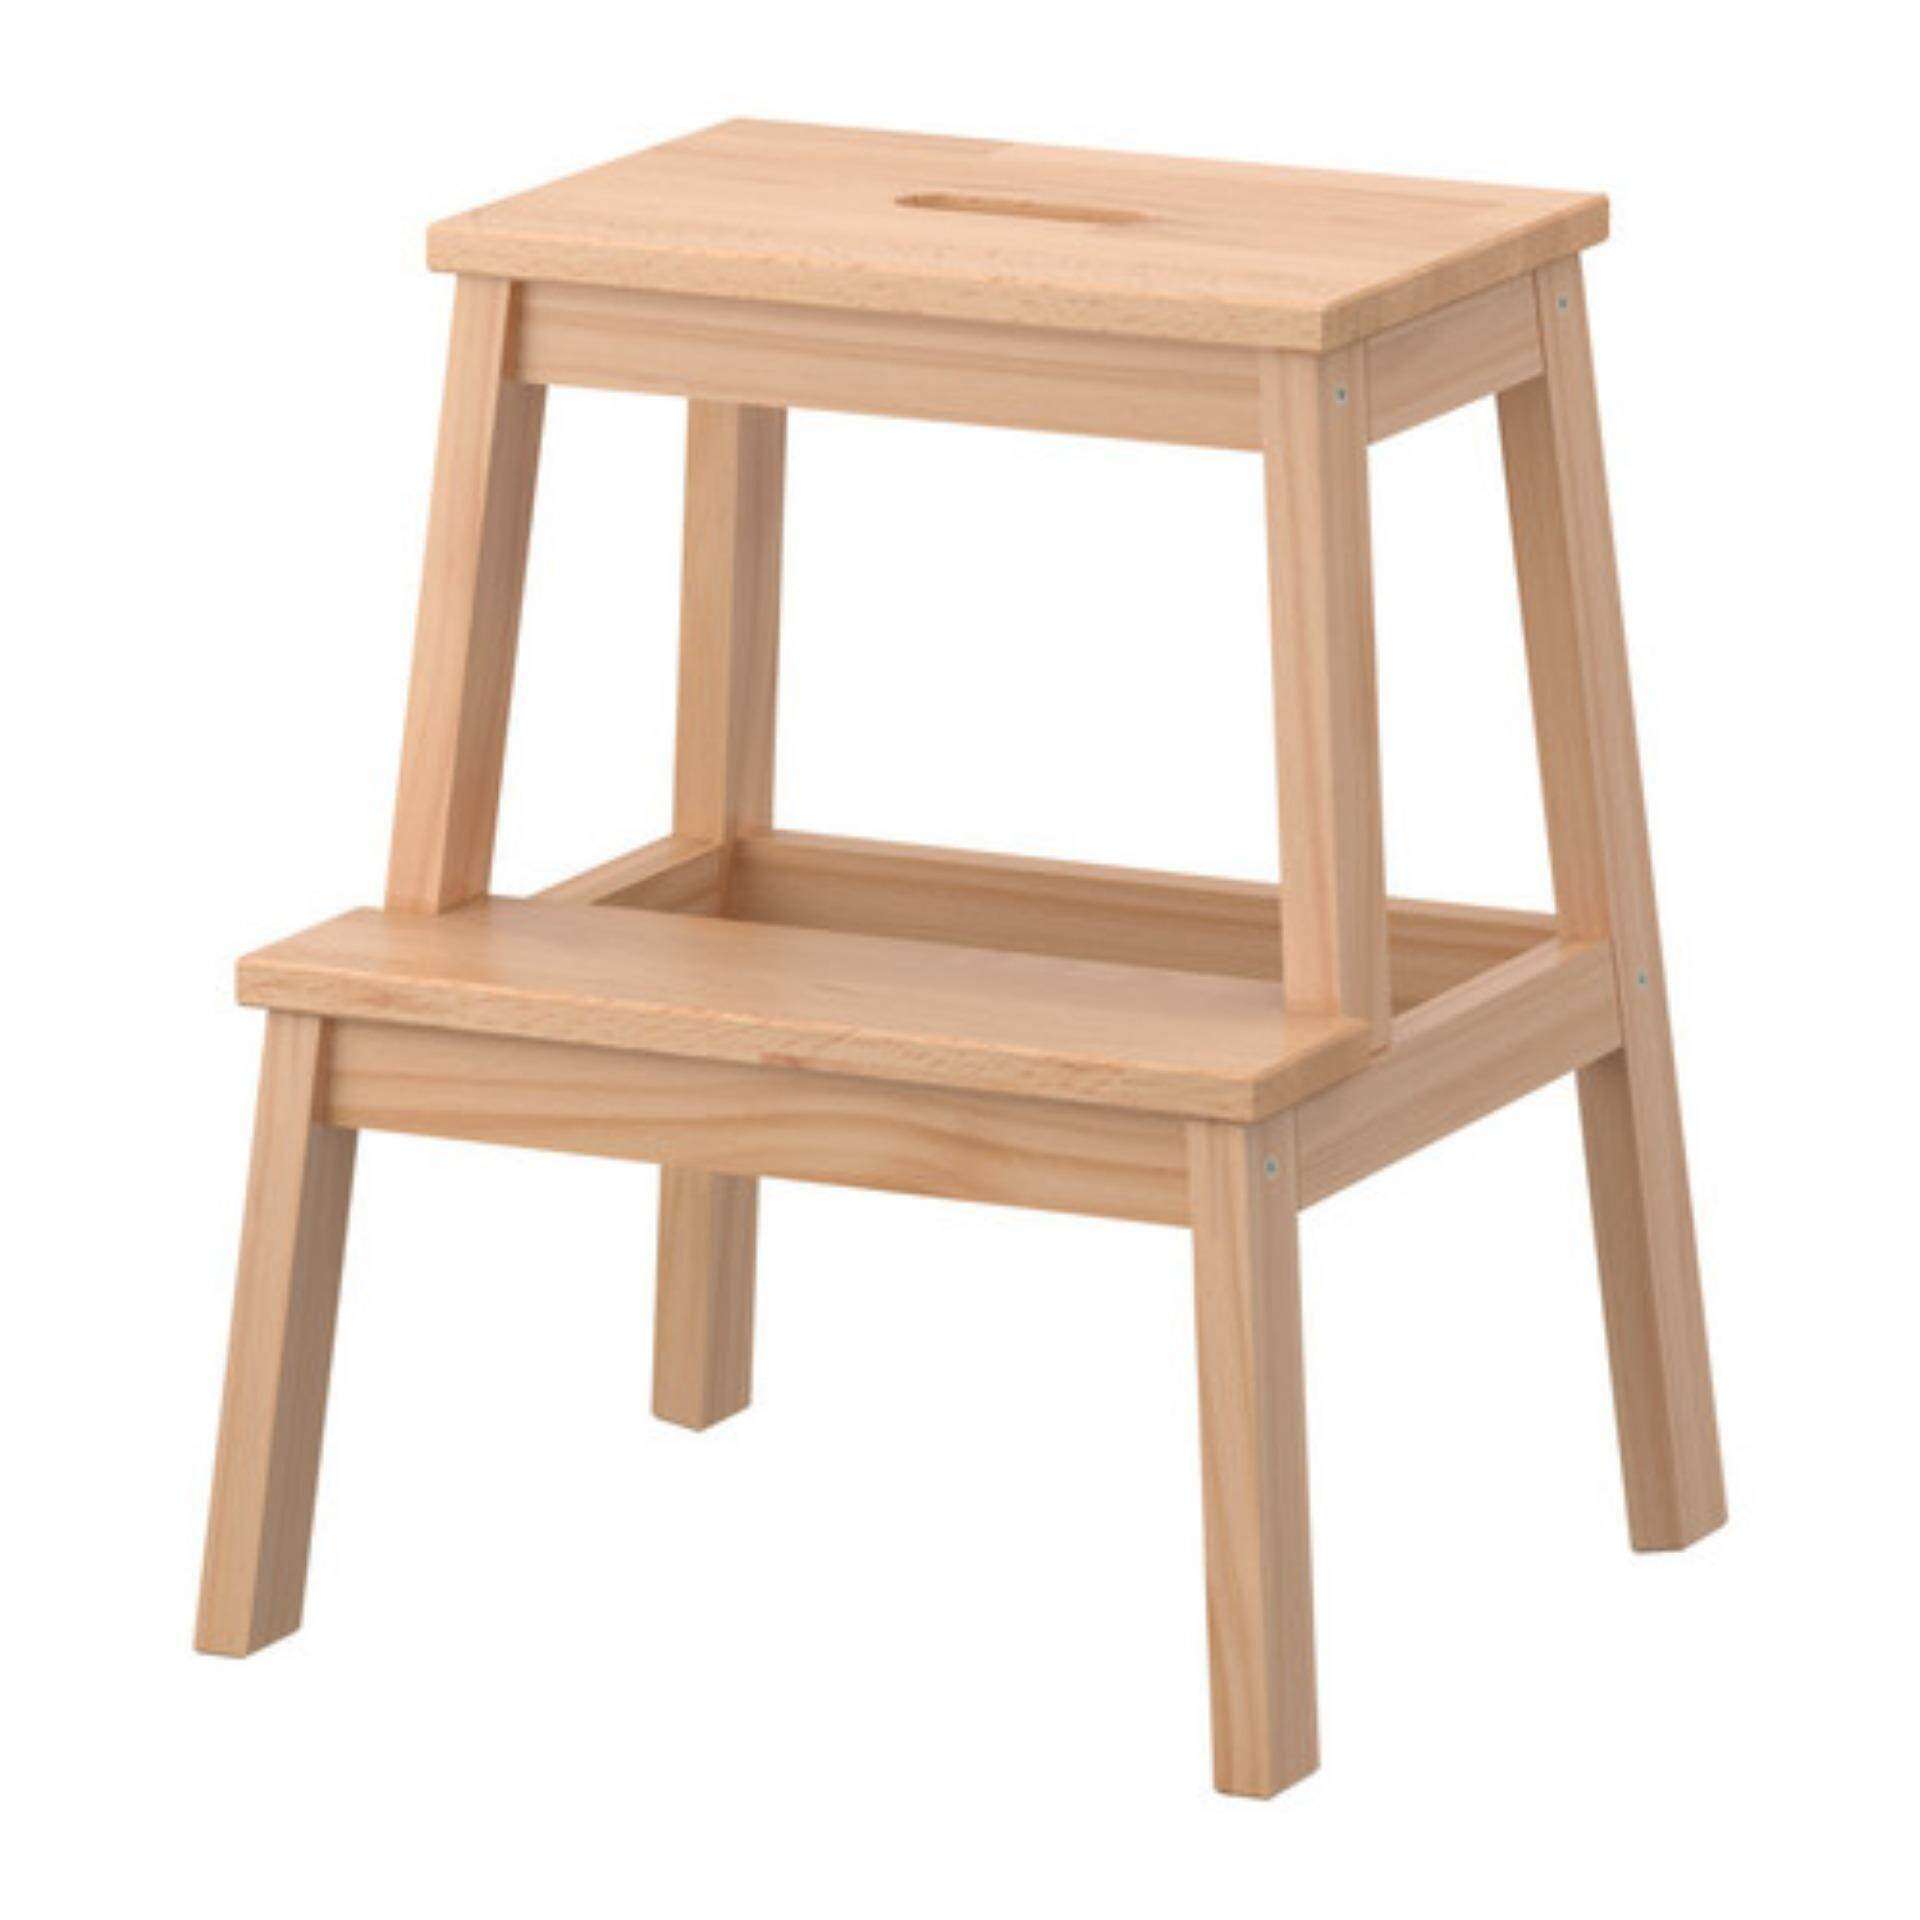 BEKVAM Multipurpose Step Stool Natural Solid Wood, Home Office, Kids,  School, Side